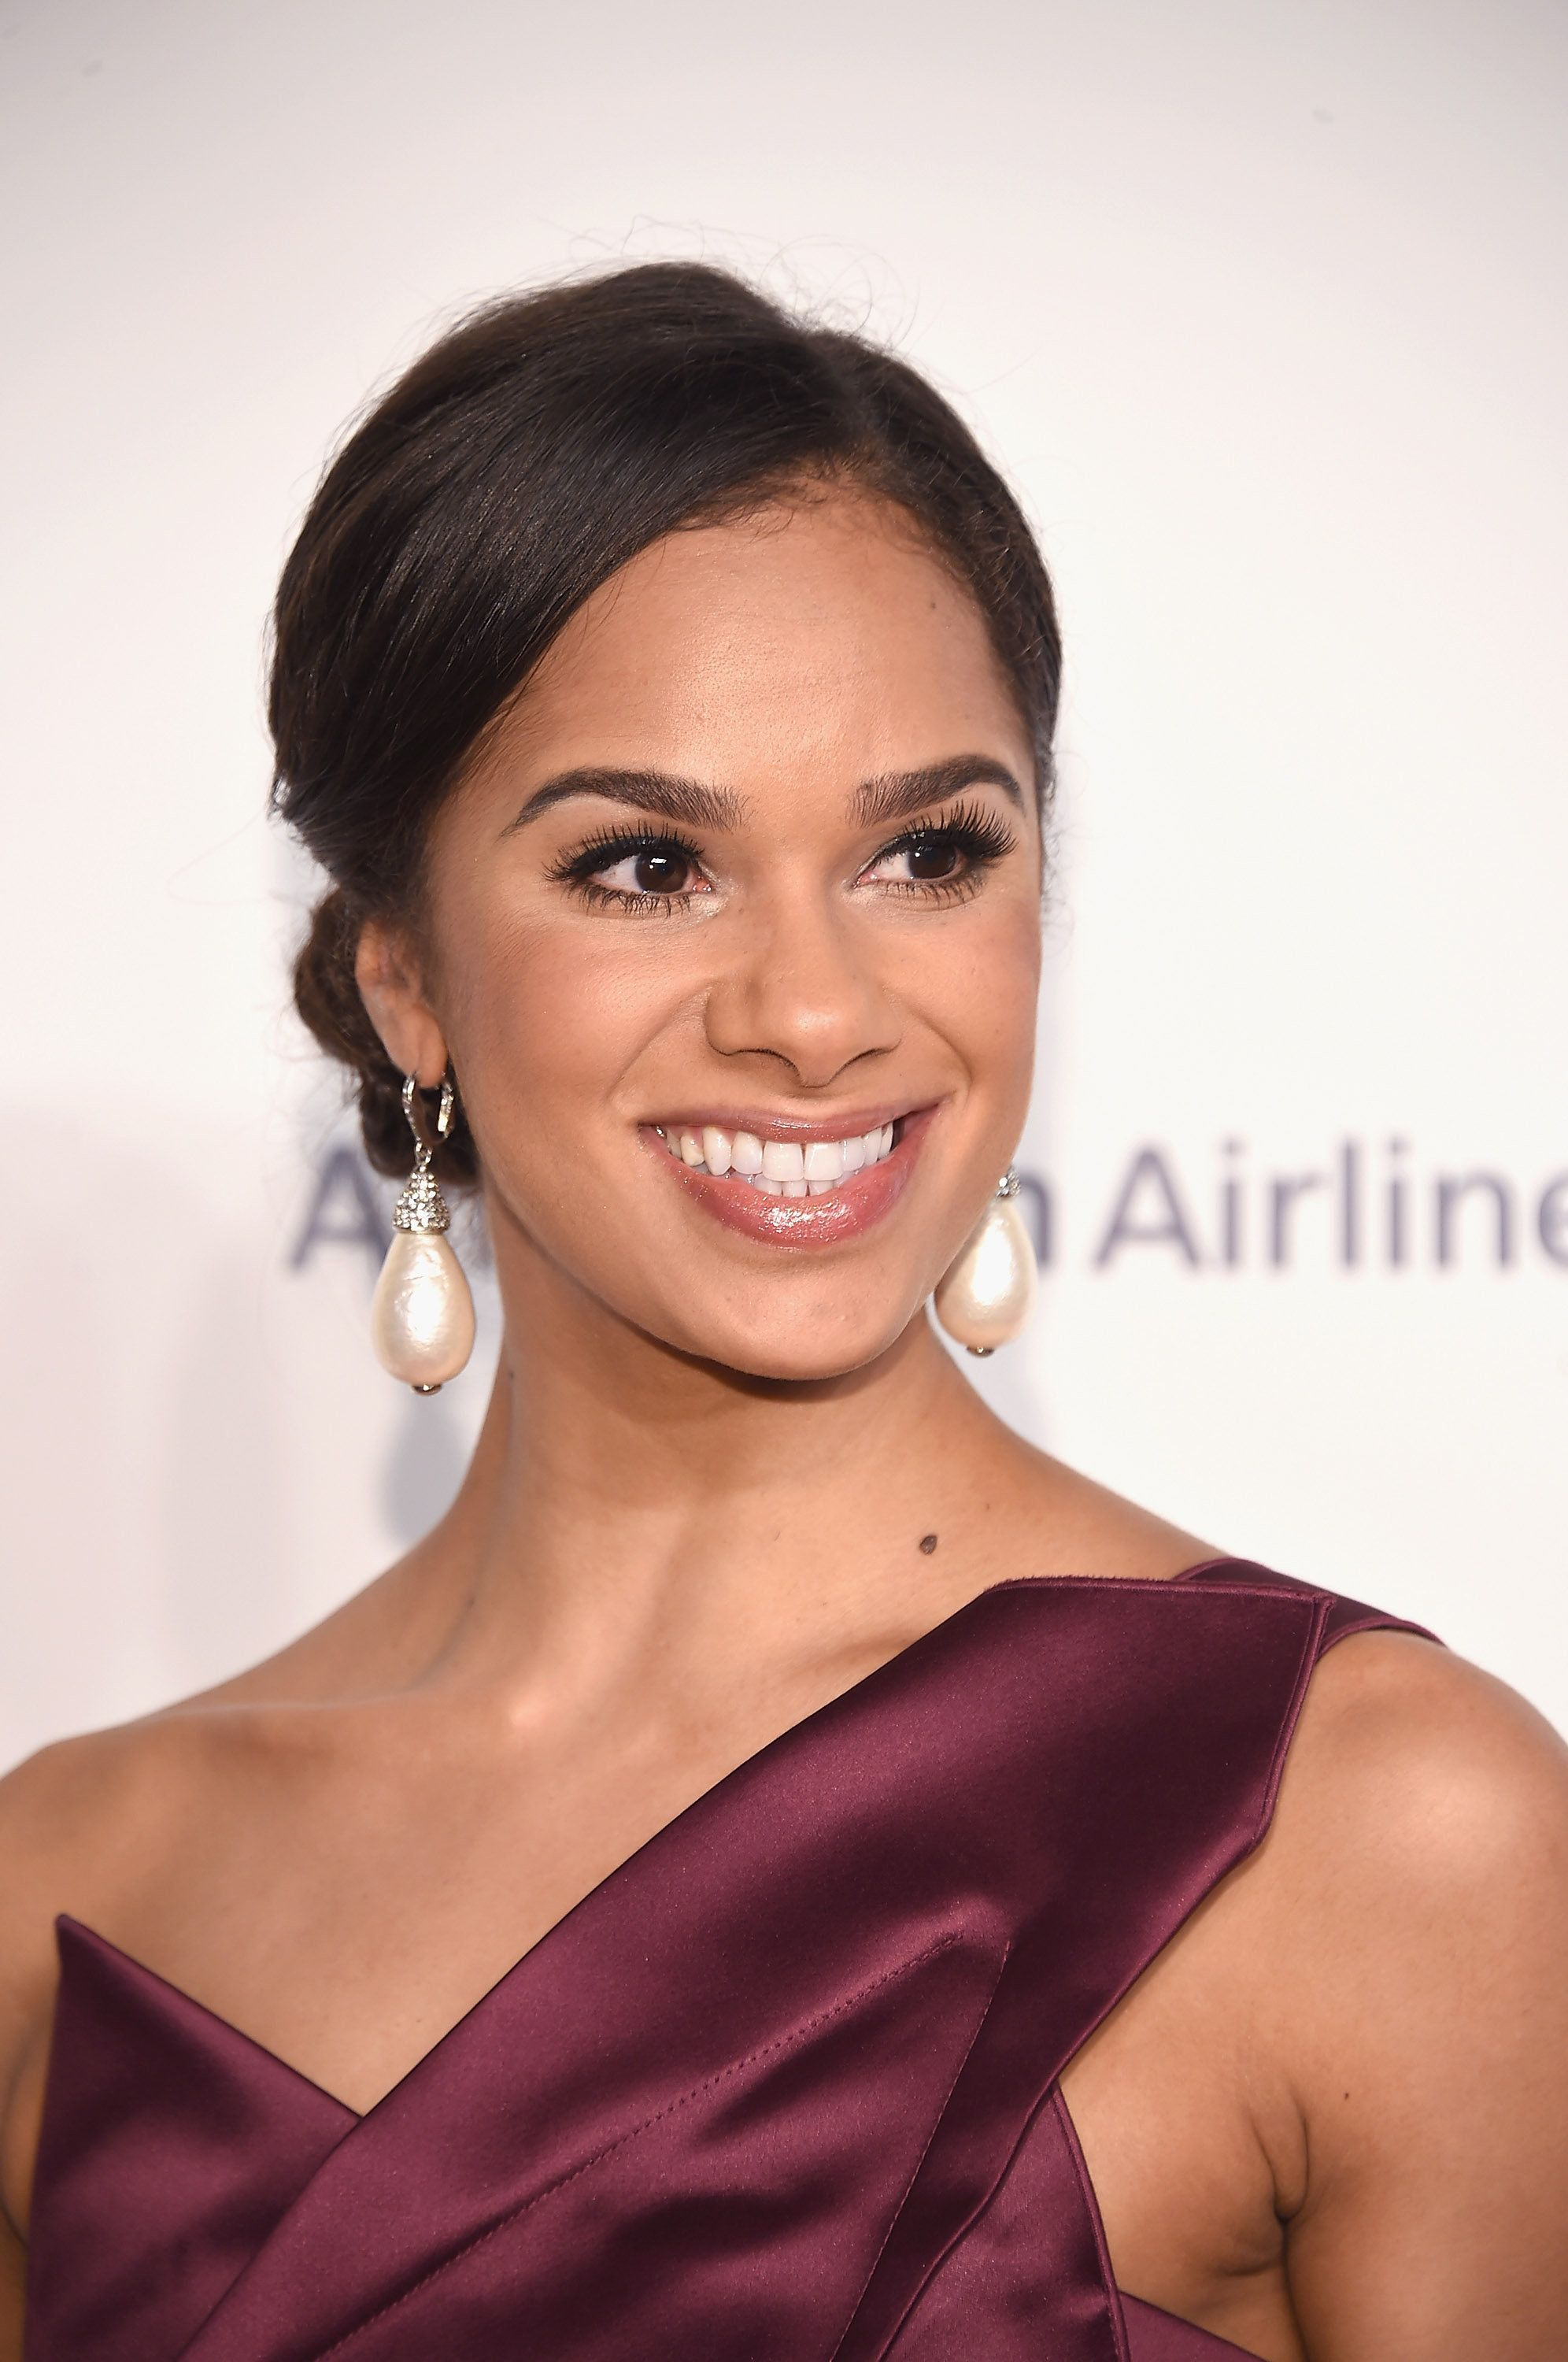 NEW YORK, NY - OCTOBER 21:  American Ballet Theatre principal dancer Misty Copeland attends the American Ballet 75th Anniversary Fall Gala at David H. Koch Theater at Lincoln Center on October 21, 2015 in New York City.  (Photo by Gary Gershoff/WireImage)